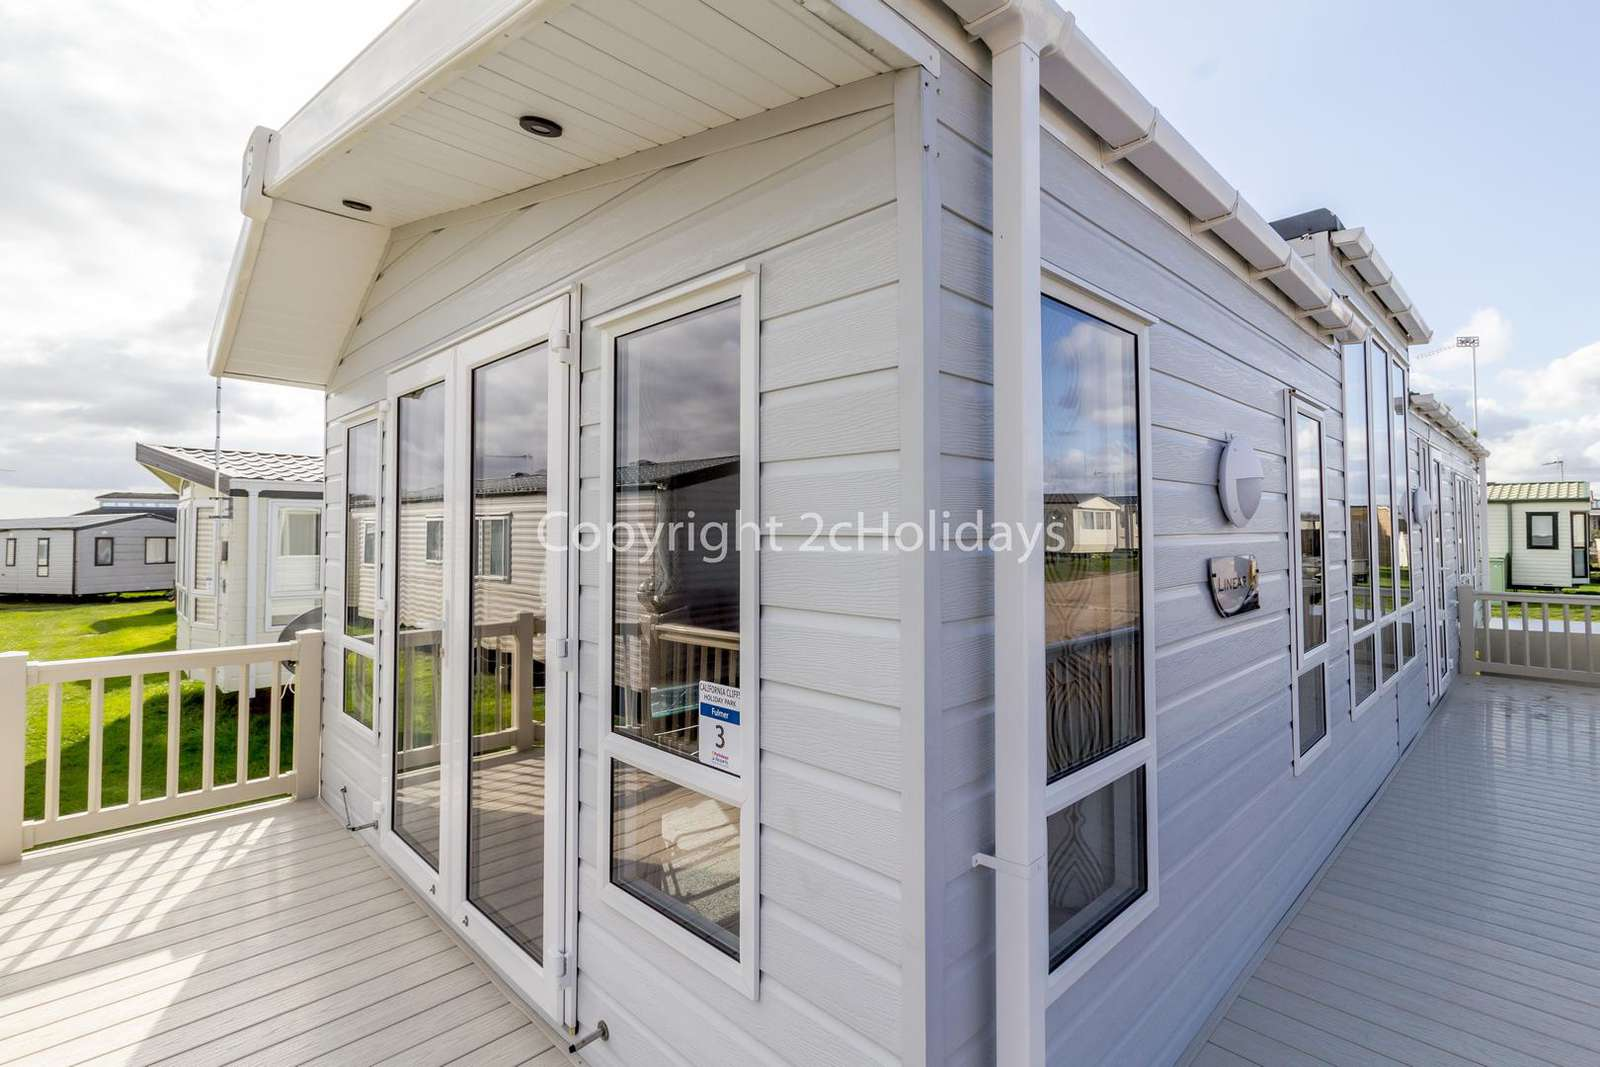 Stunning caravan with a great amount of gated decking!